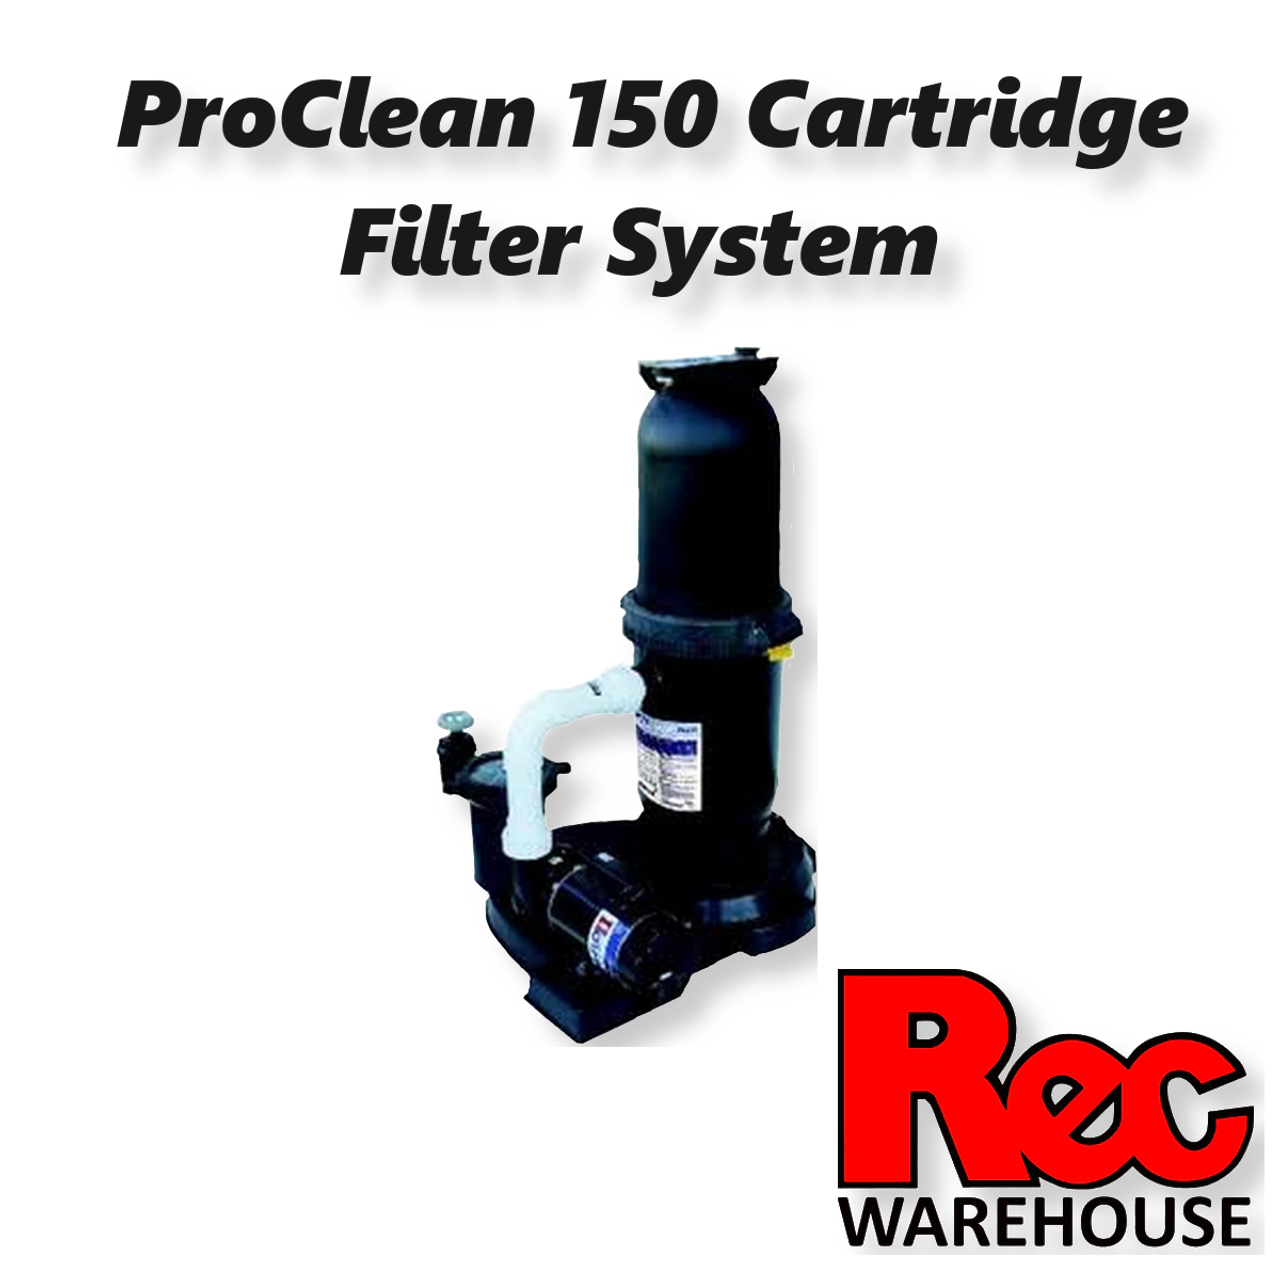 Proclean 150 Cartridge Filtration System